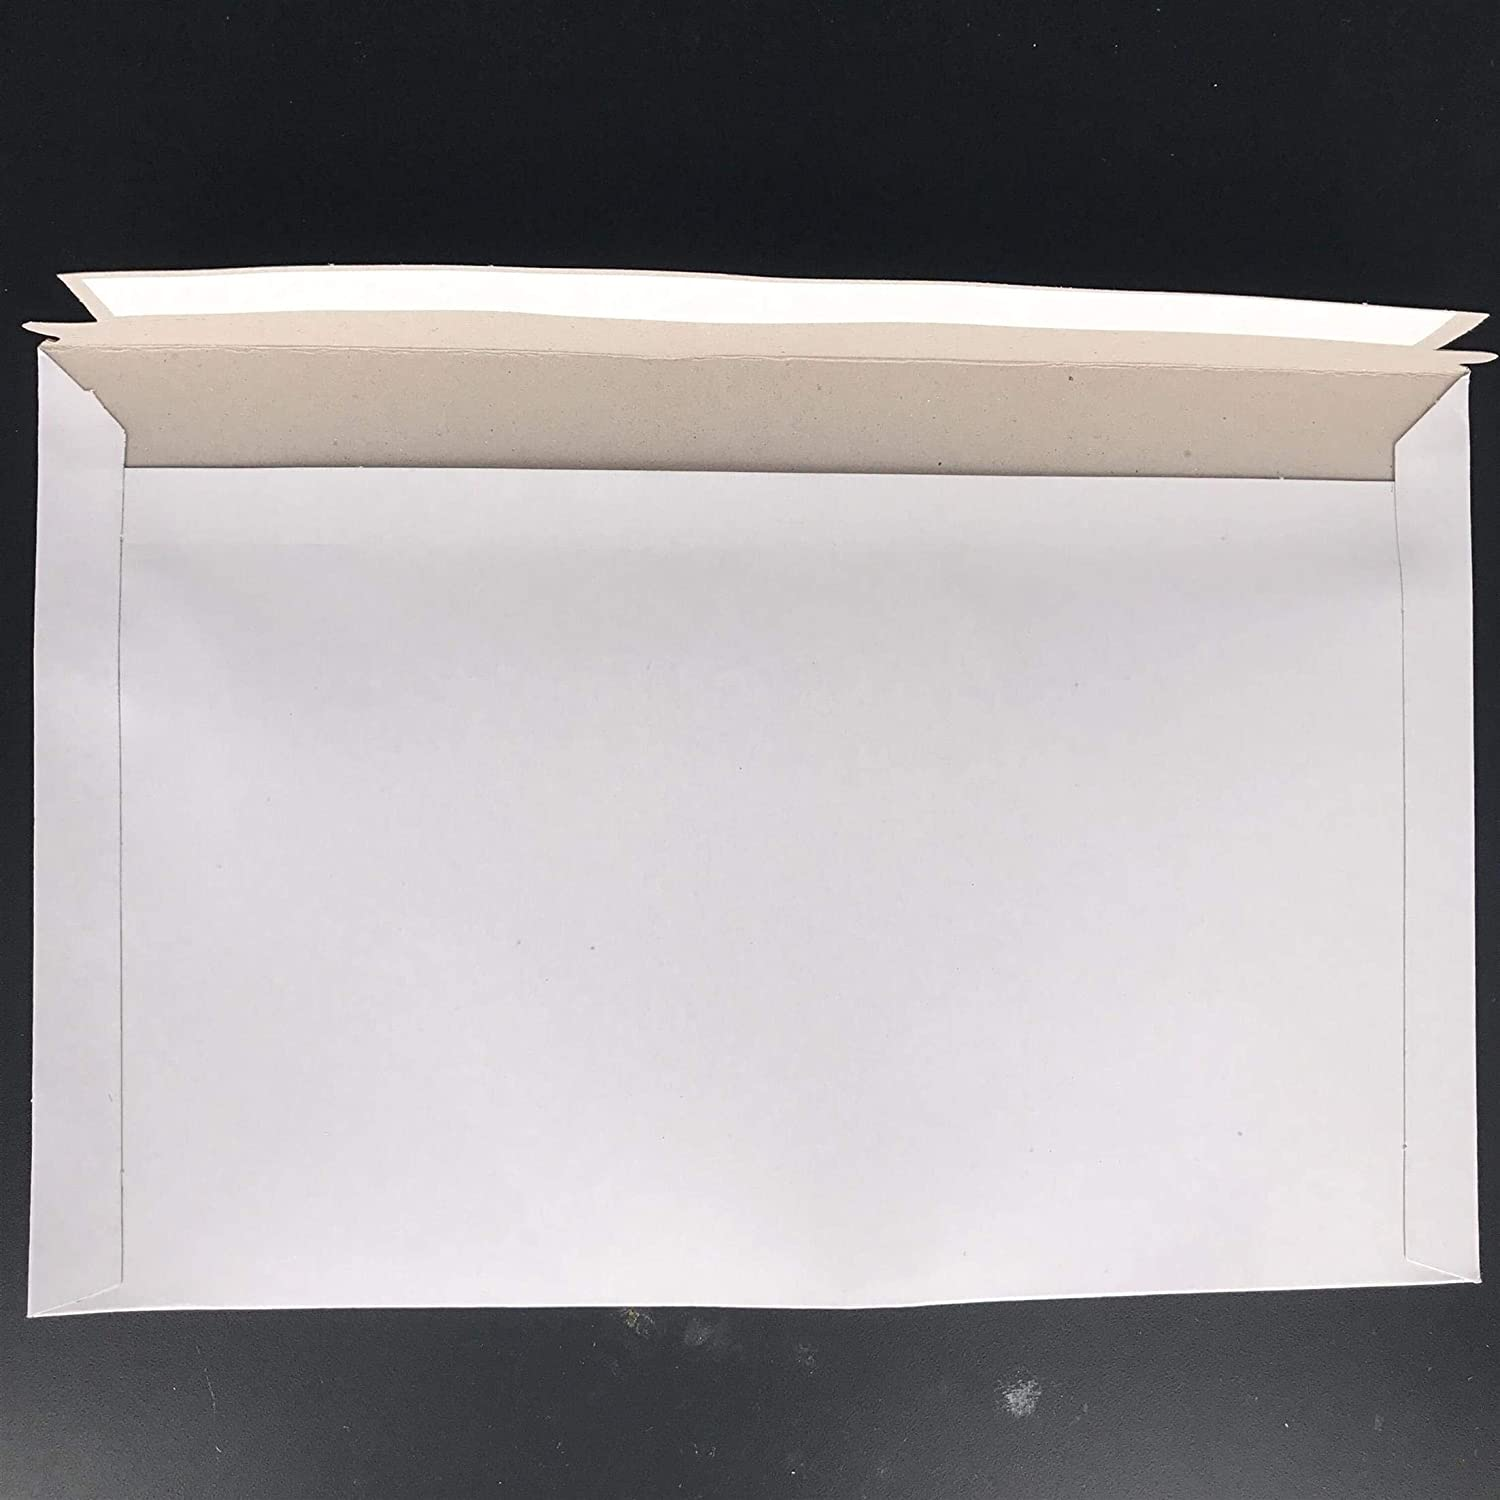 Blank Express Small Envelope Universal White Wordless Courier Envelope File Bag Letter Bag Courier Bag